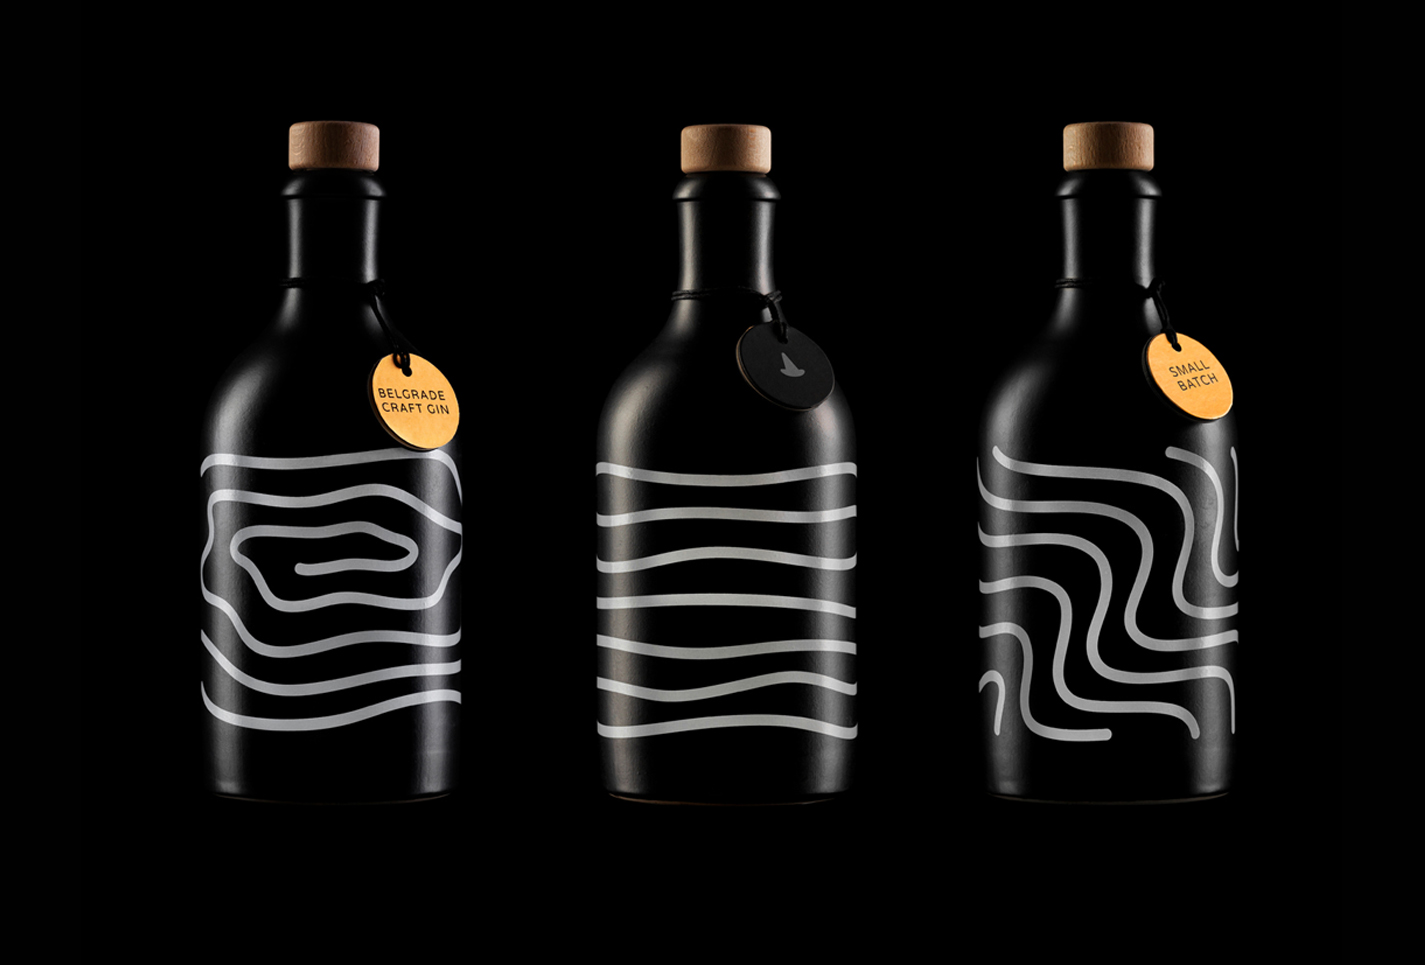 Young Salt Gin Packaging Design Created by Stefan Knezevic